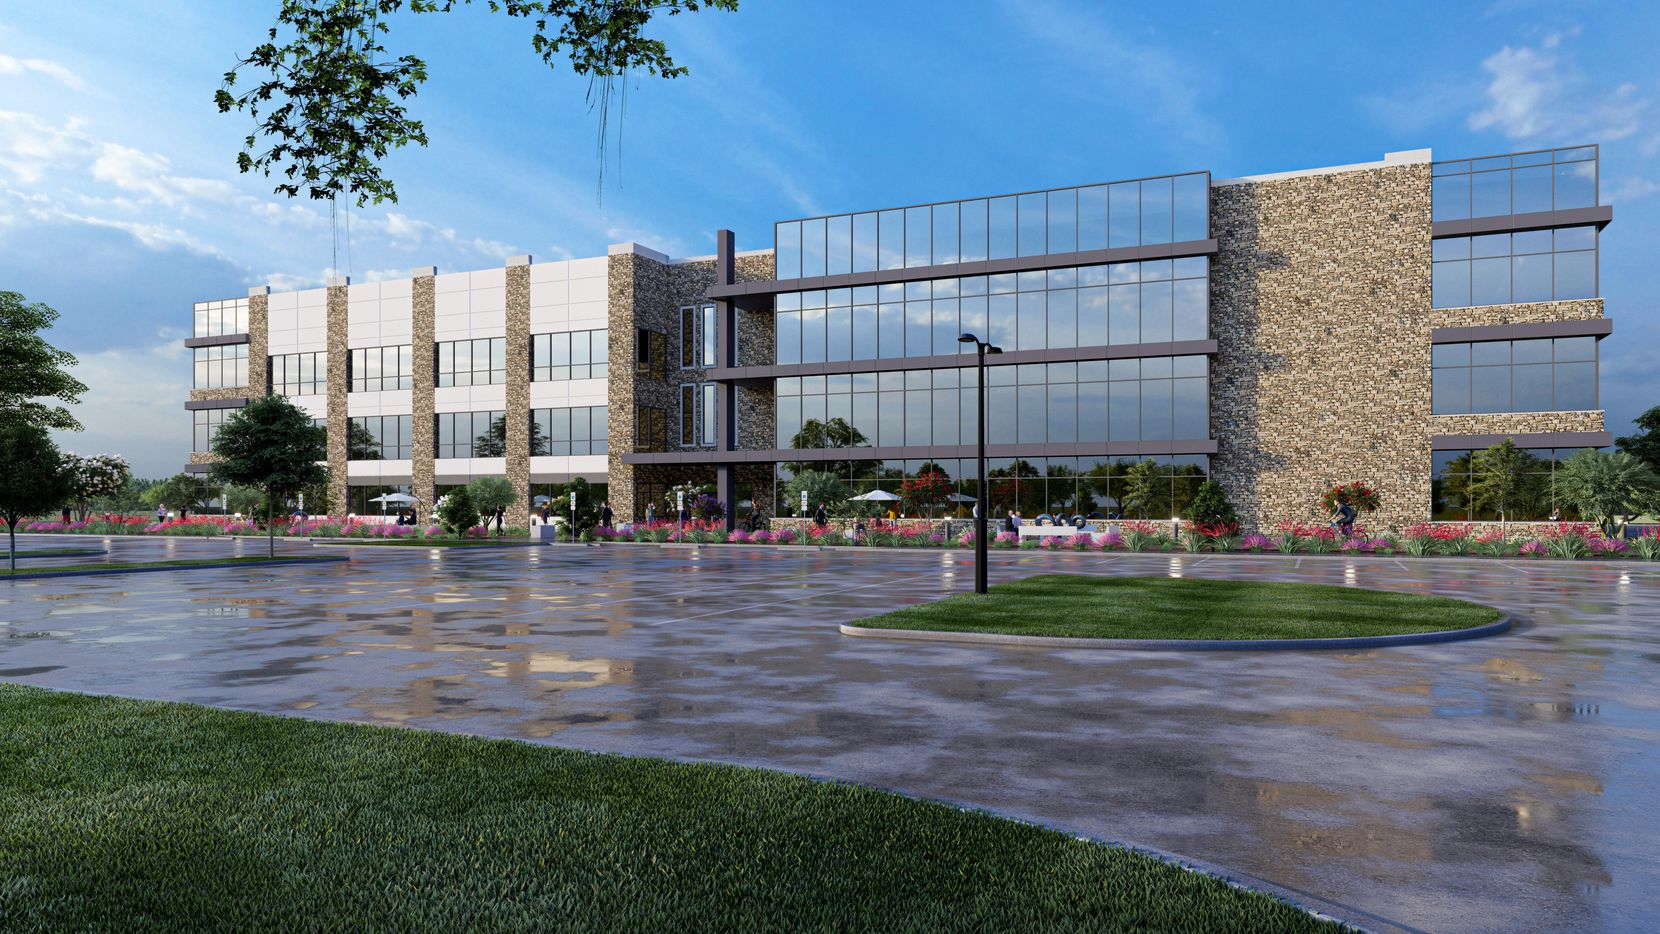 Construction will start on the new office project in early 2021.